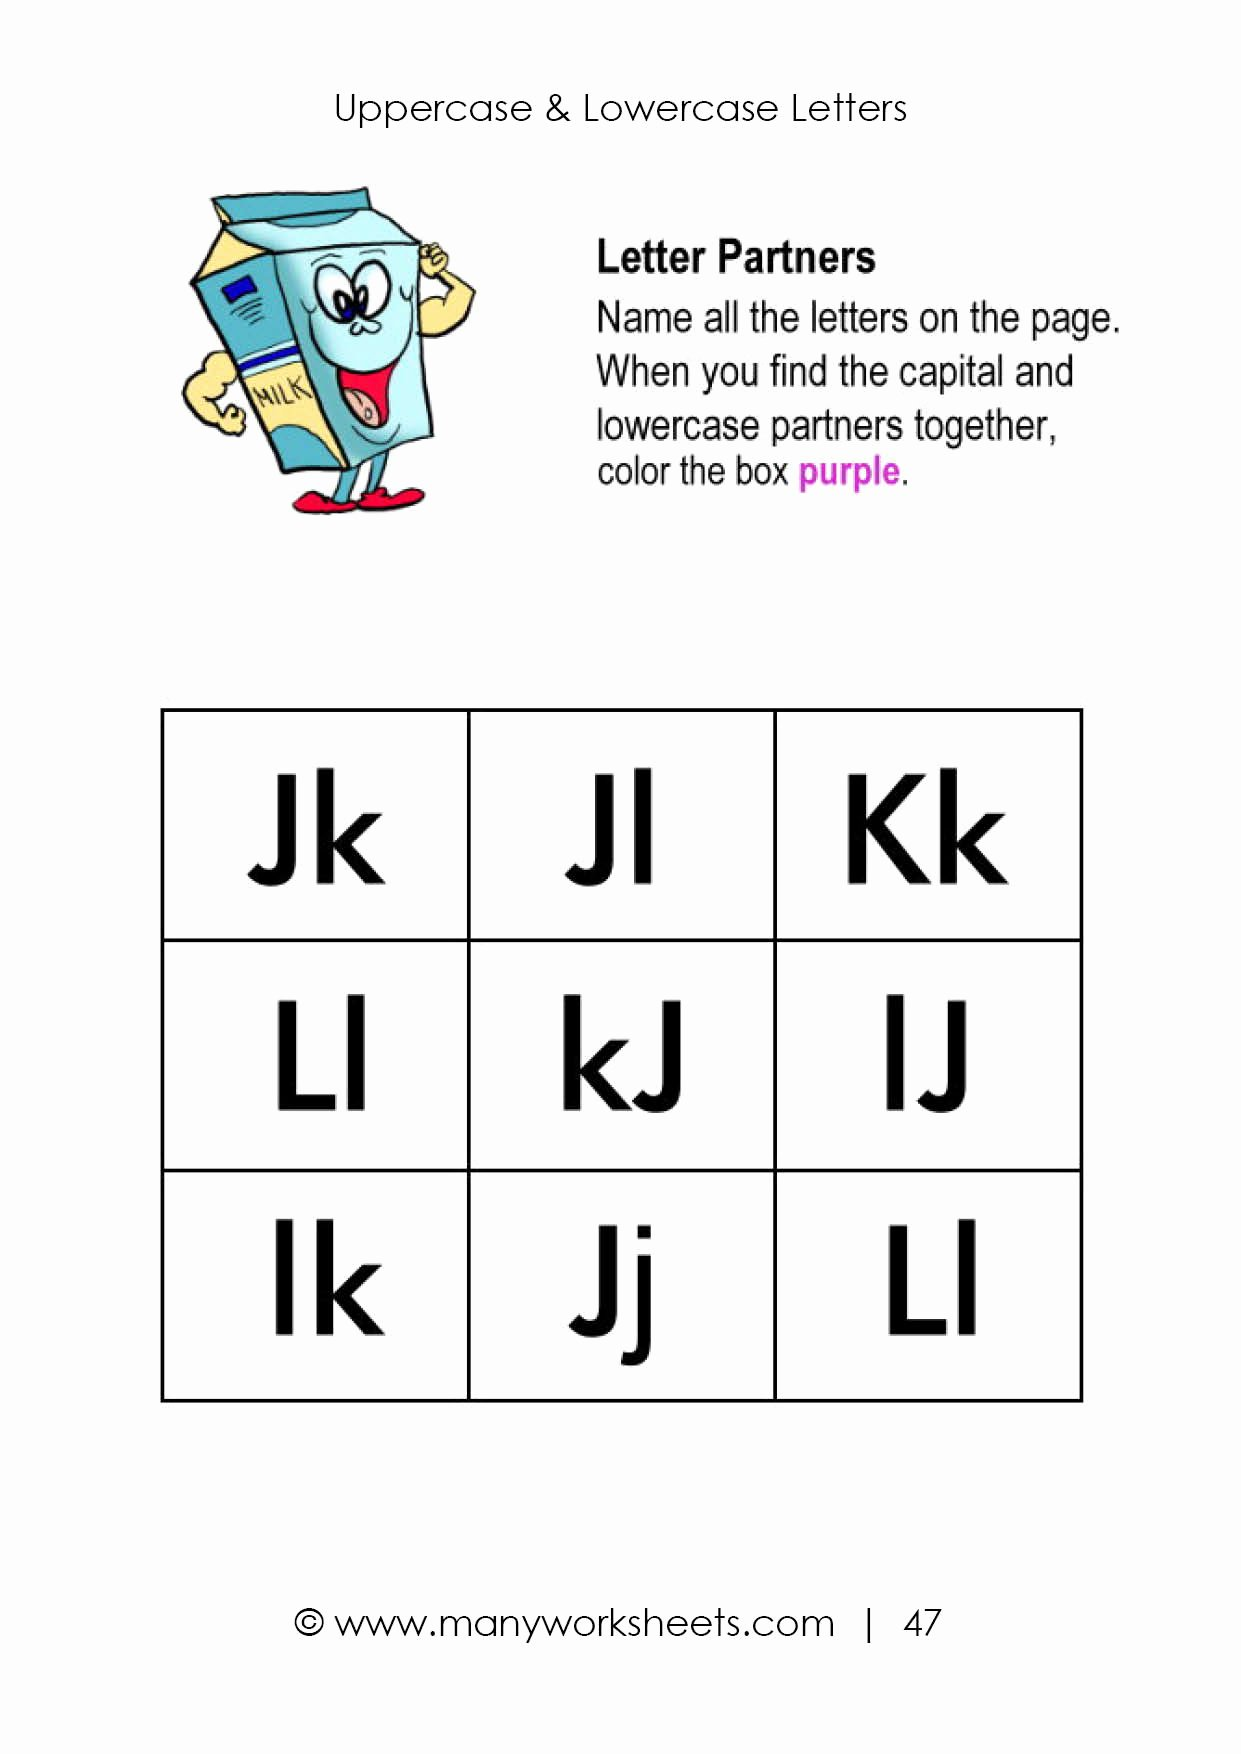 Pairing Worksheets for Preschoolers Beautiful Uppercase and Lowercase Letters Worksheet